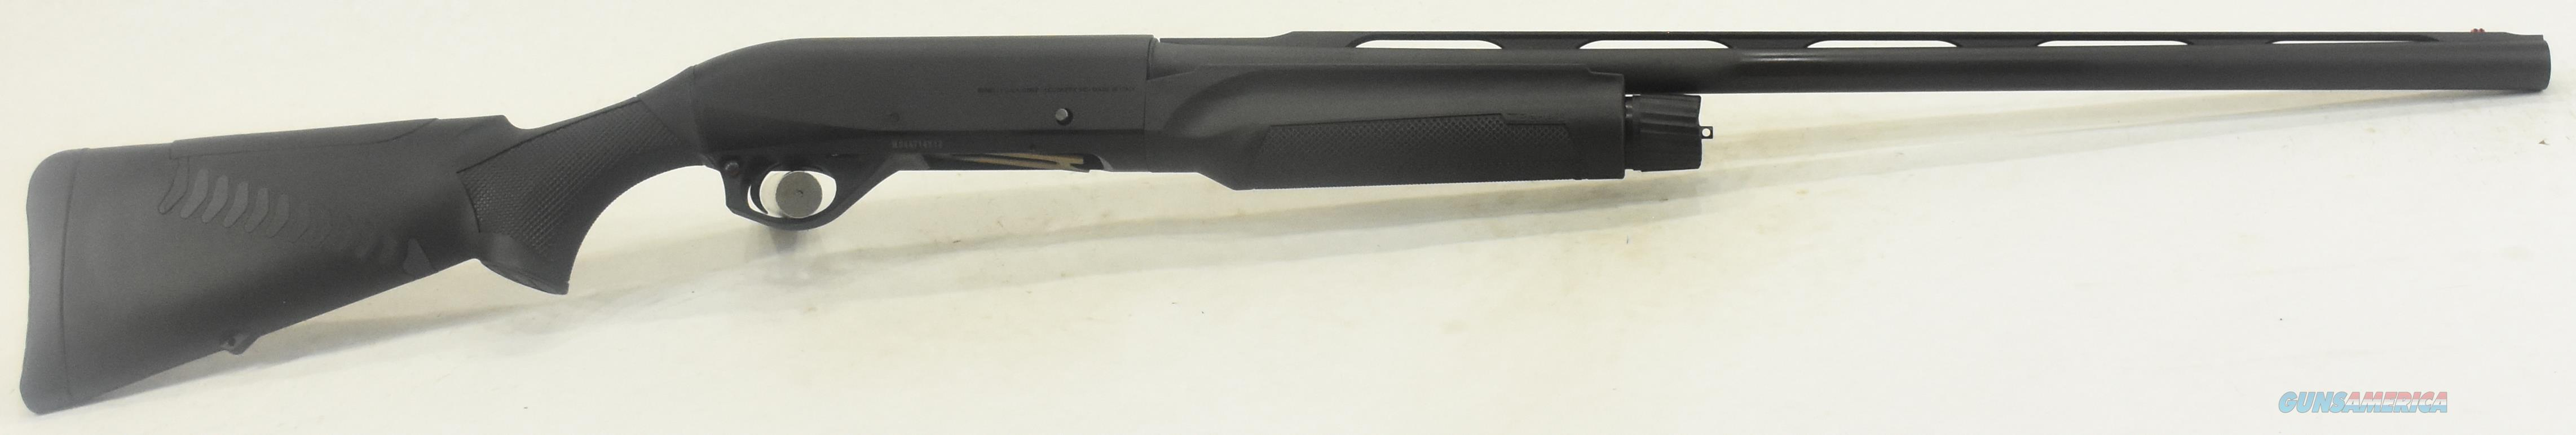 11073 Benelli M2 Field Black Left Hand 12 Ga 26-3In  Guns > Shotguns > Benelli Shotguns > Sporting